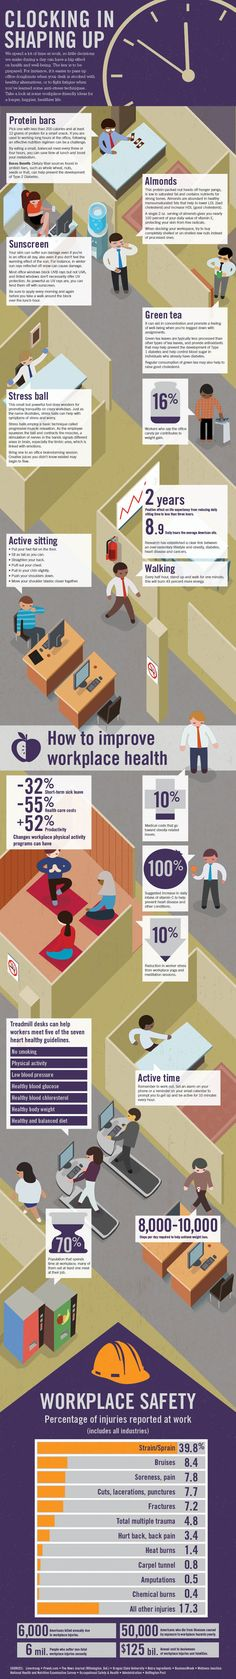 Our infographic walks through some of the key health and wellness opportunities and pitfalls of the office. Take a look at some of the workplace-friendly ideas for a longer, happier, and healthier life. Employee Wellness, Workplace Wellness, Workplace Safety, Office Safety, Key Health, Health And Wellbeing, Health Tips, Wellness Programs, Wellness Tips